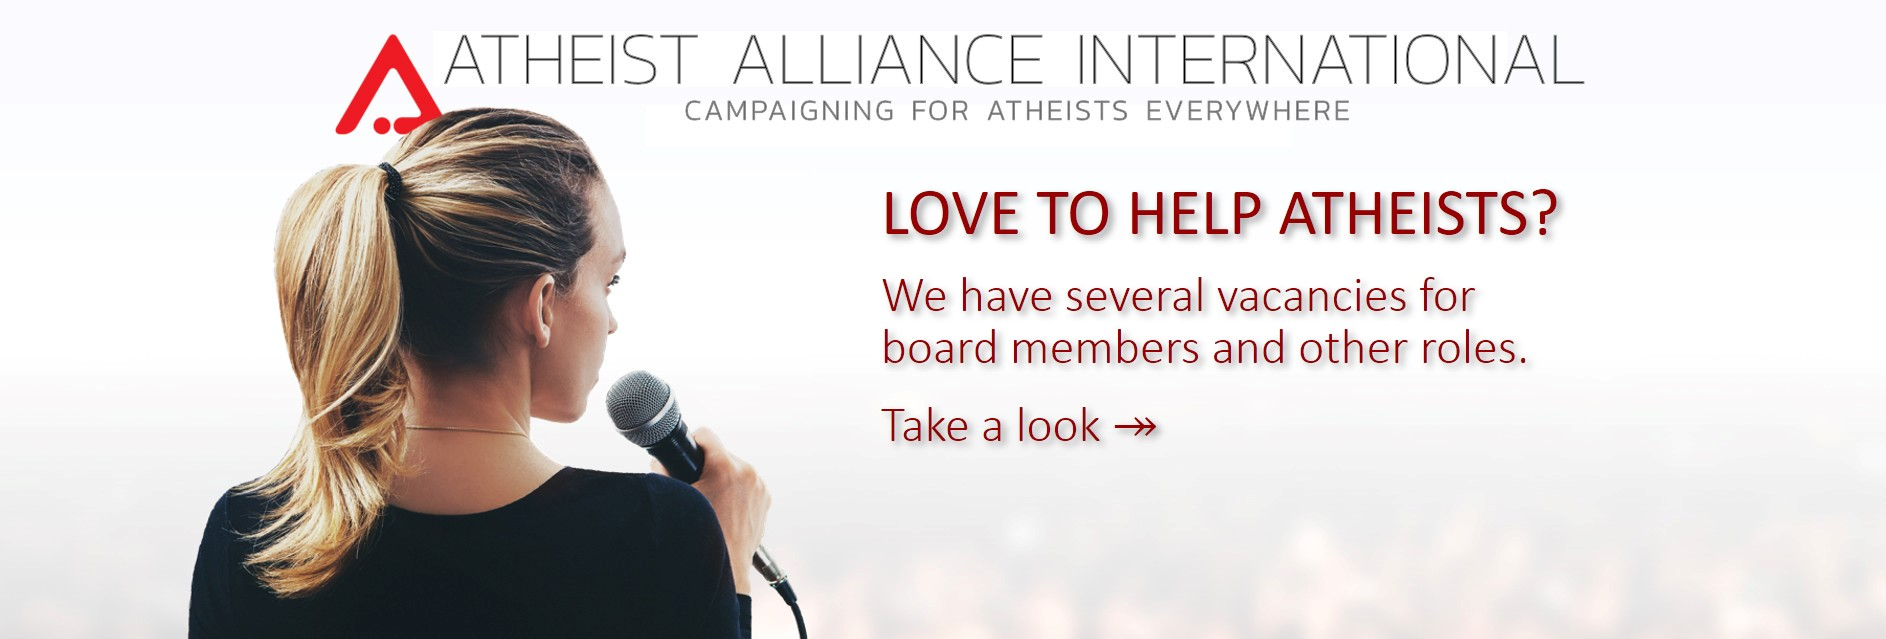 Atheist Alliance International - a positive voice for atheism and